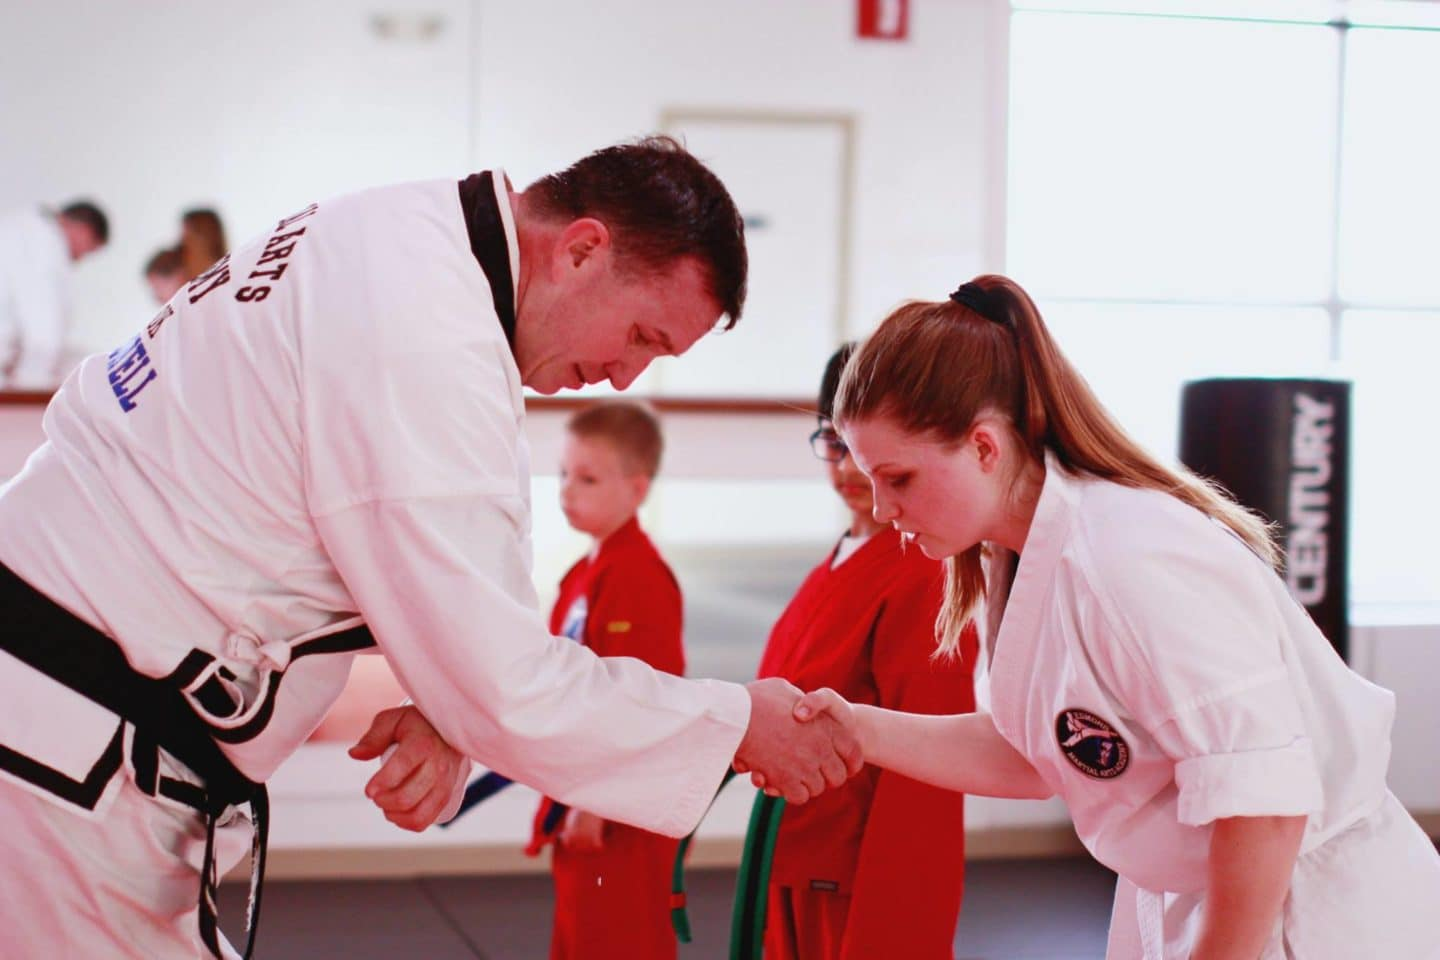 instructor shaking hands with youth student in white uniform